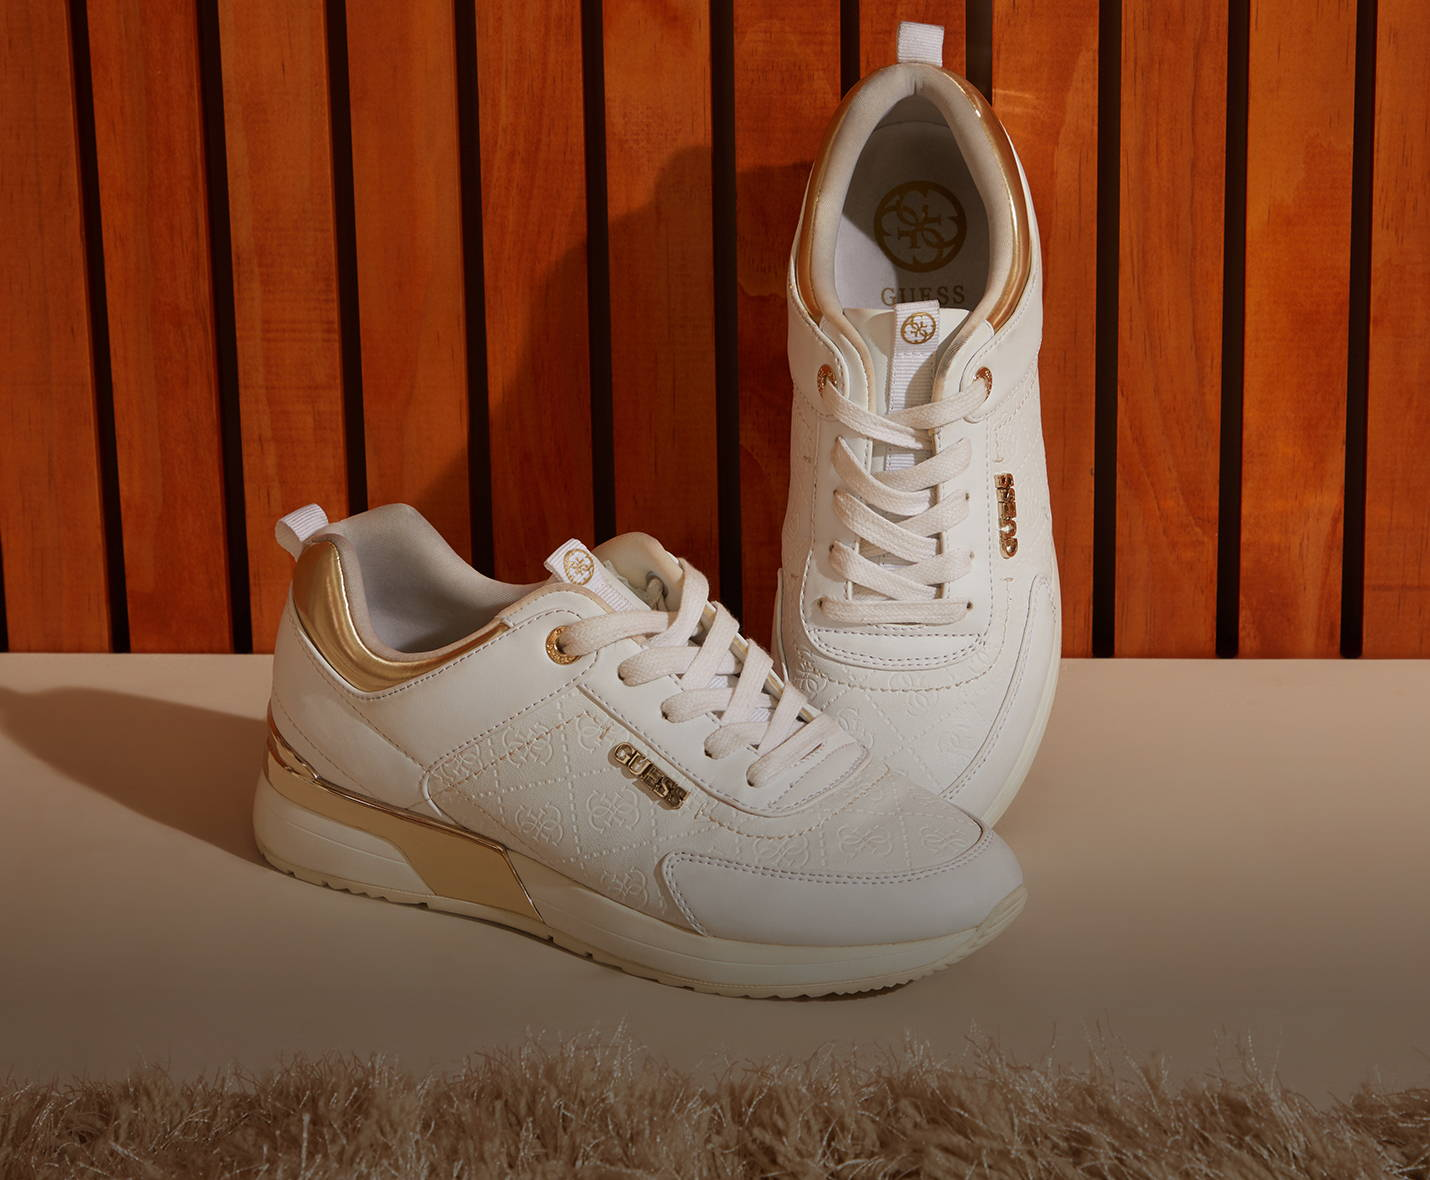 Guess white shoes and footwear